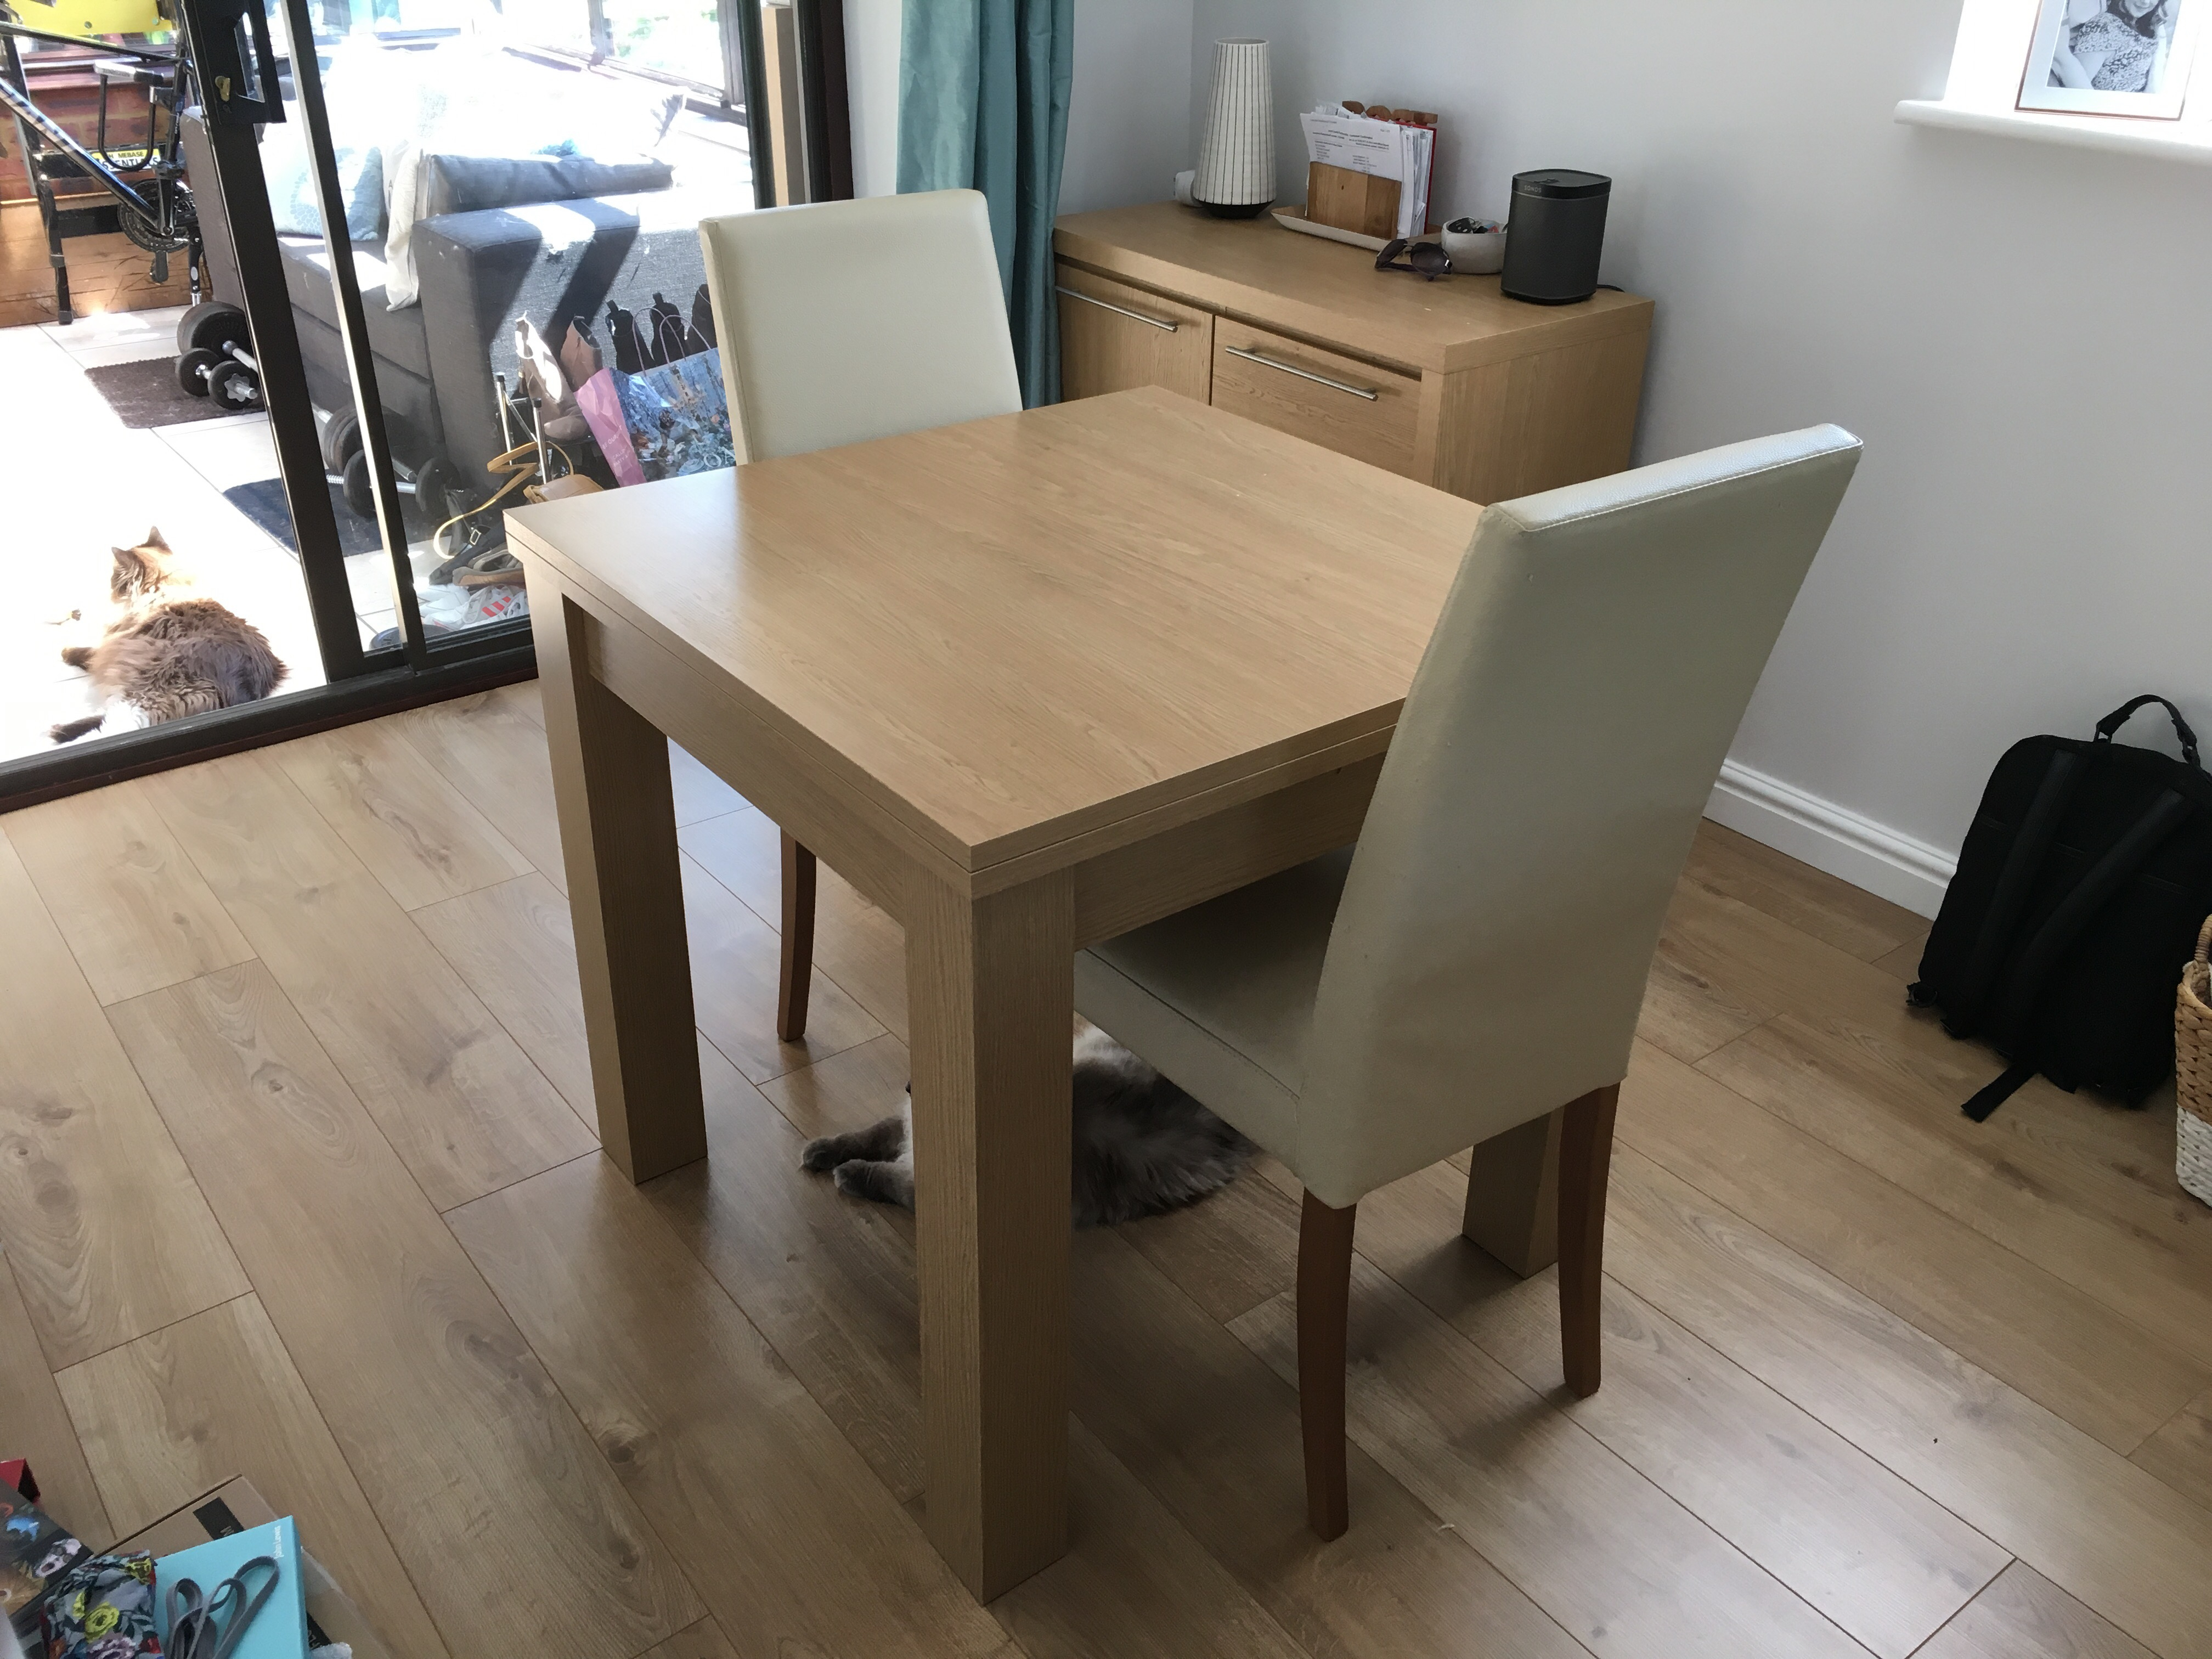 New Dining Furniture From John Lewis' Alba Range (Review) | Life Of Man In Most Up To Date John 4 Piece Dining Sets (Image 18 of 20)